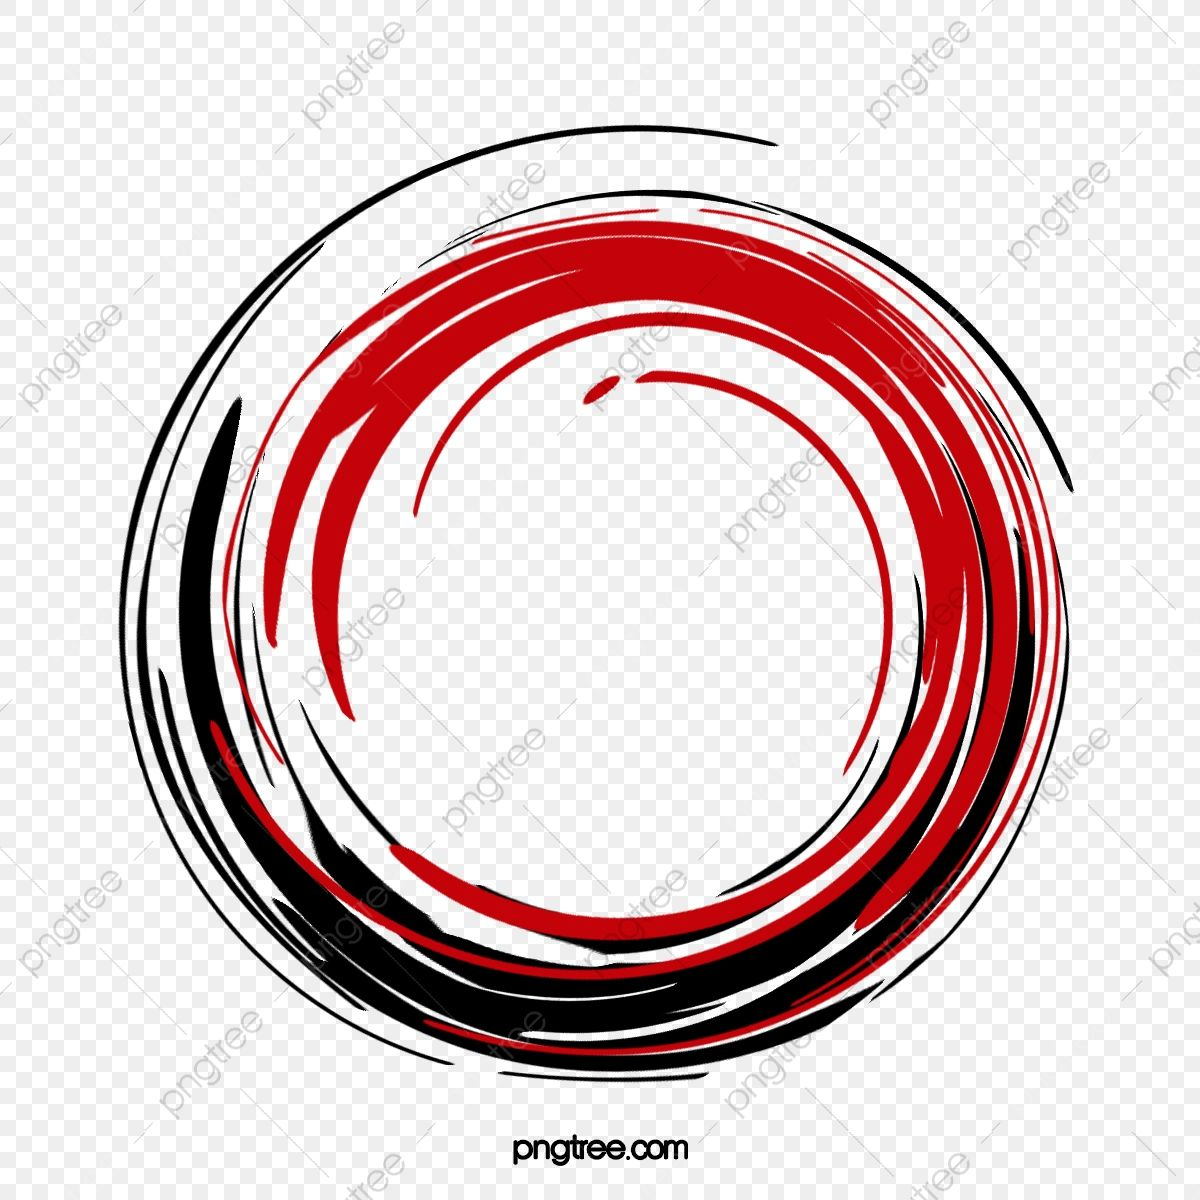 Download This Vector Red Circle Ink Circle Vector Ink Marks Circle Png Clipart Image With Transparent Background Or Psd File For F Circle Clipart Circle Ink